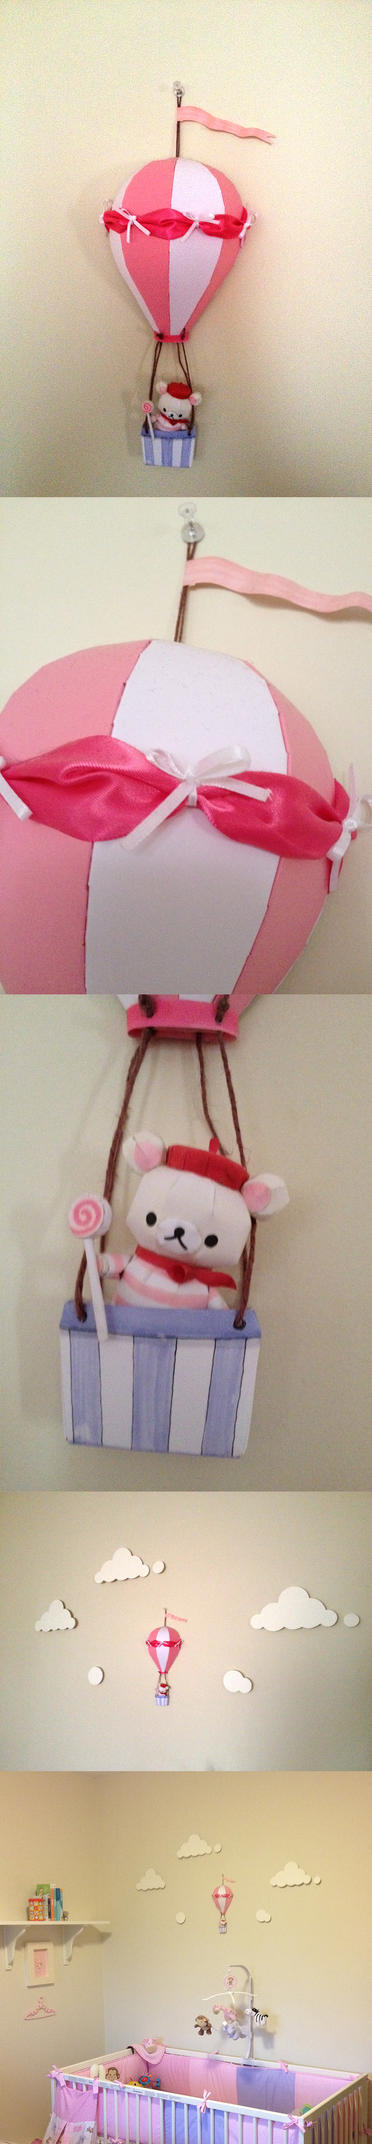 Hot air balloon papercraft by Sheharzad-Arshad